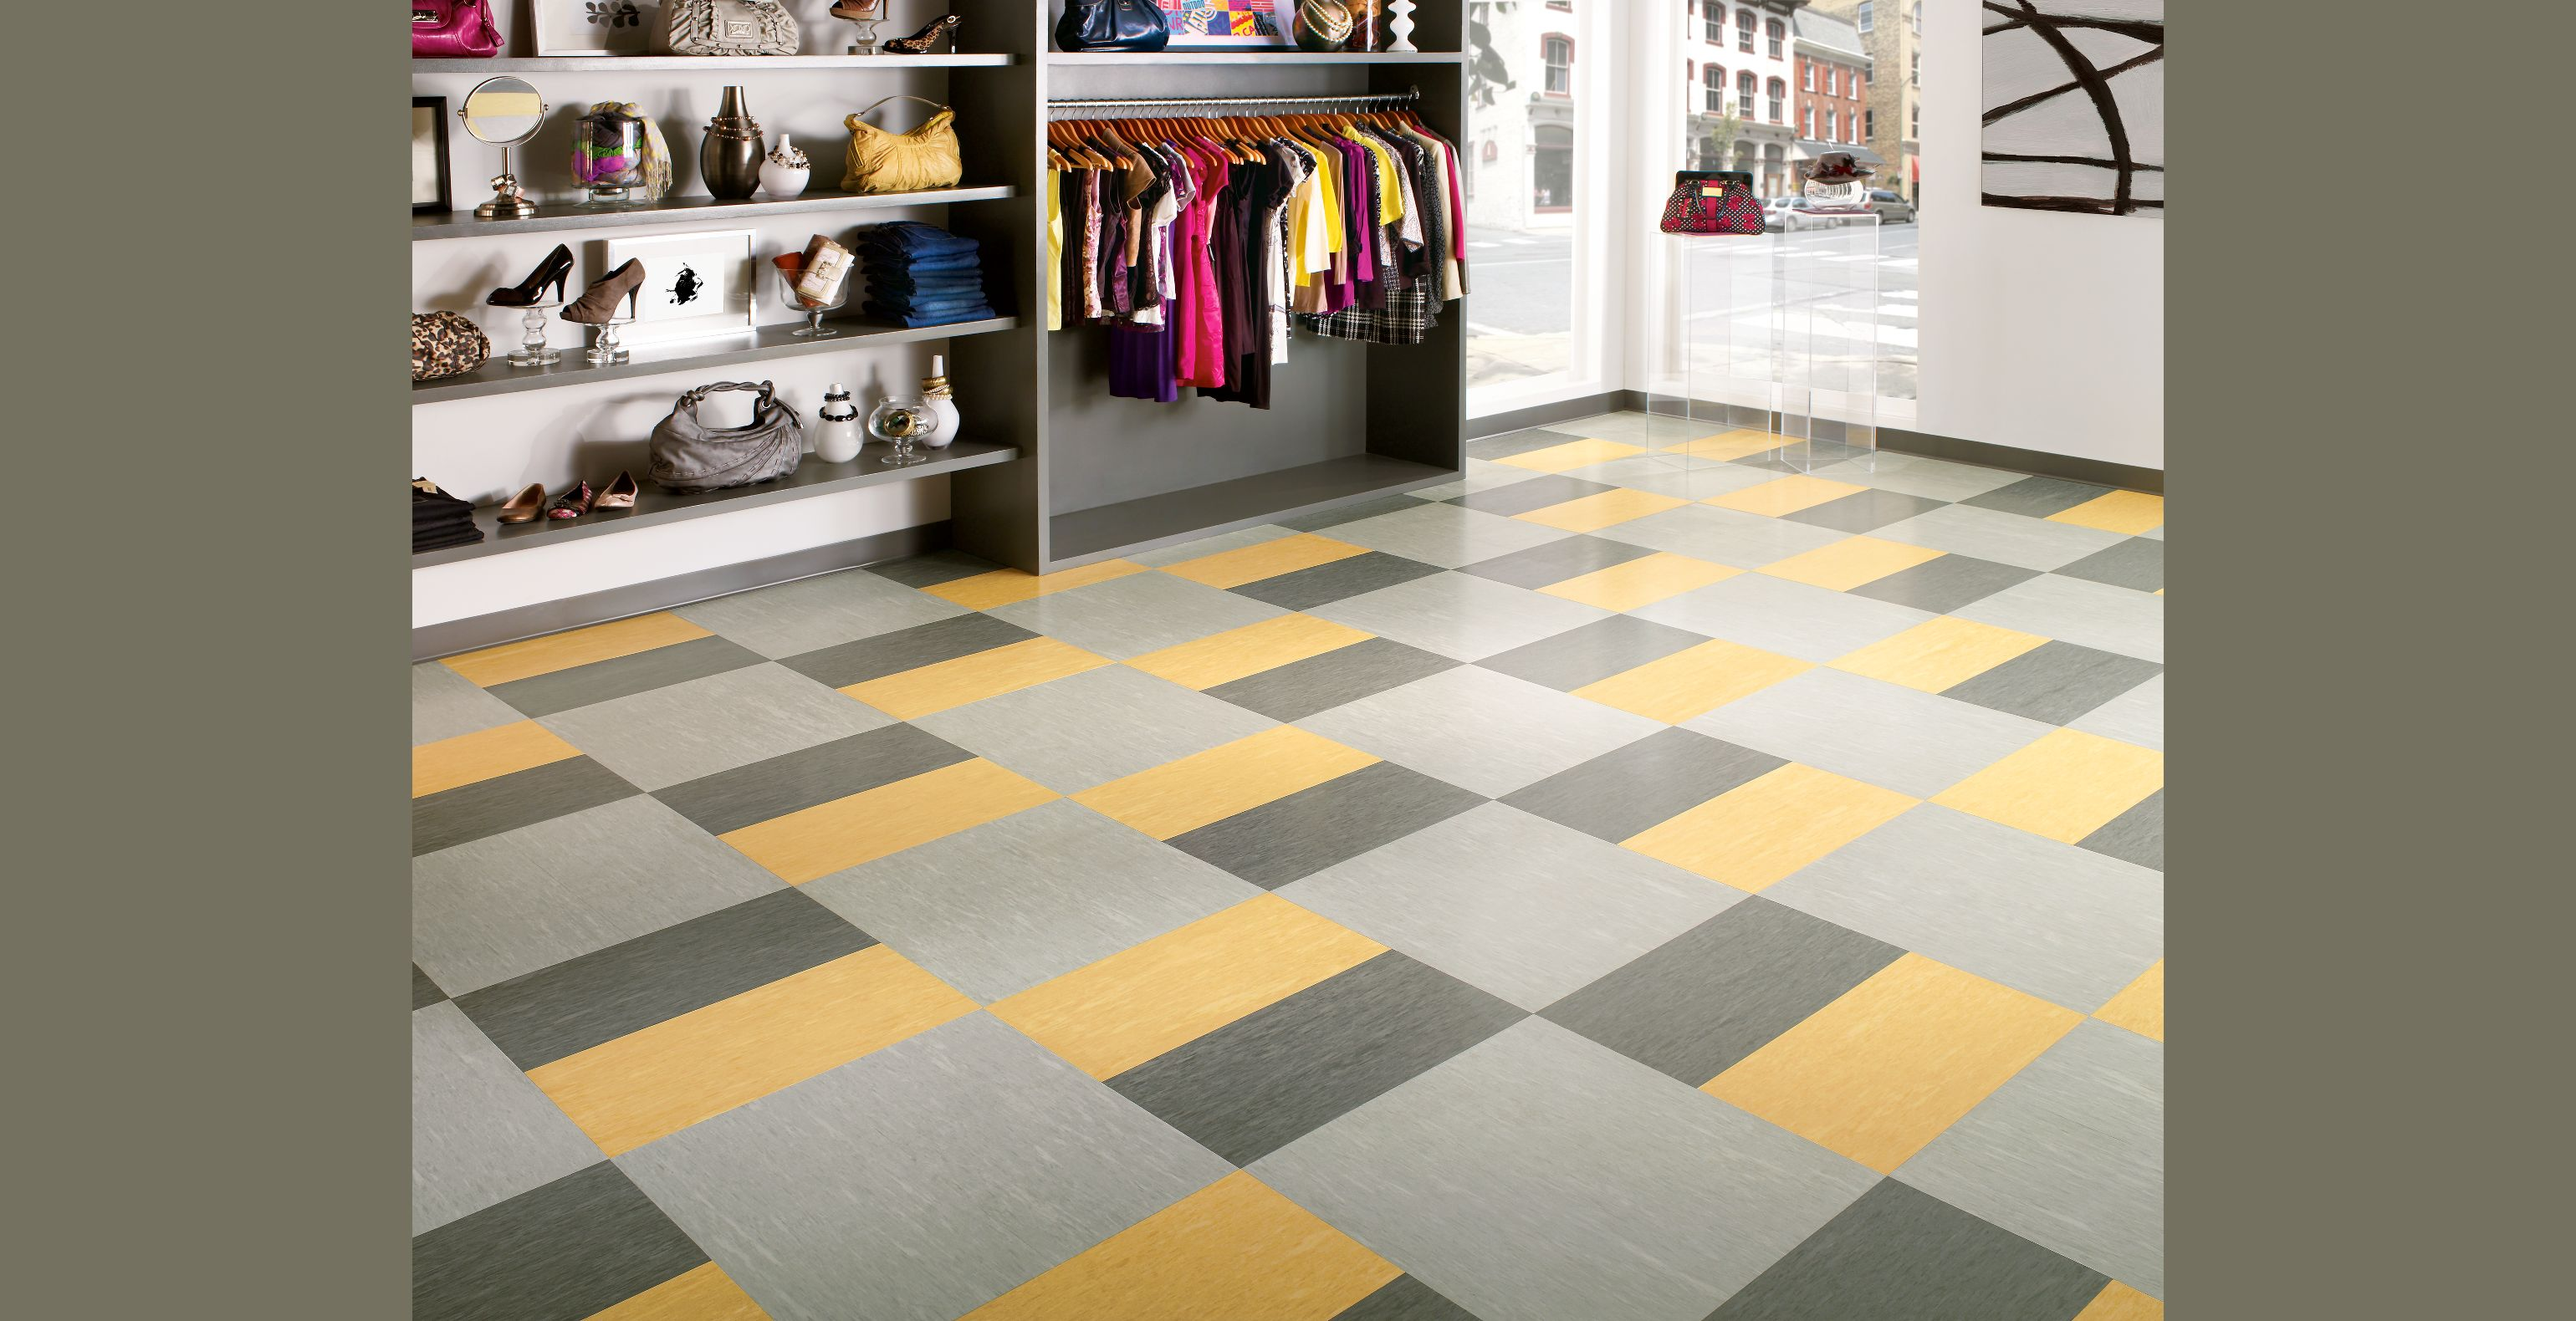 Commercial Vinyl Tiles Dubai Carpet Tiles Dubai